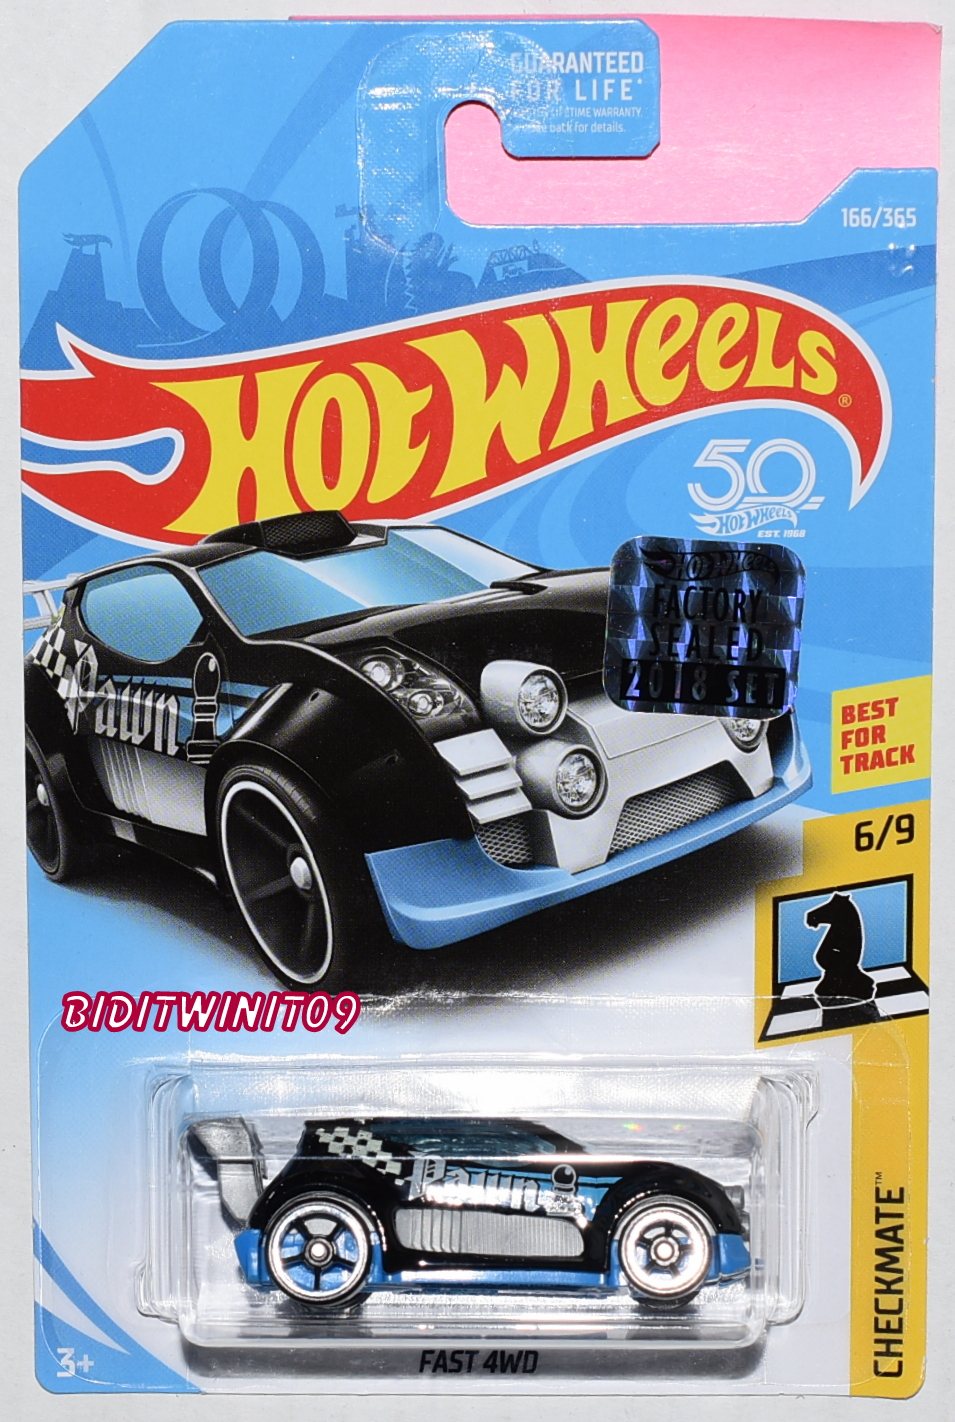 HOT WHEELS 2018 CHECKMATE FAST 4WD BLACK FACTORY SEALED